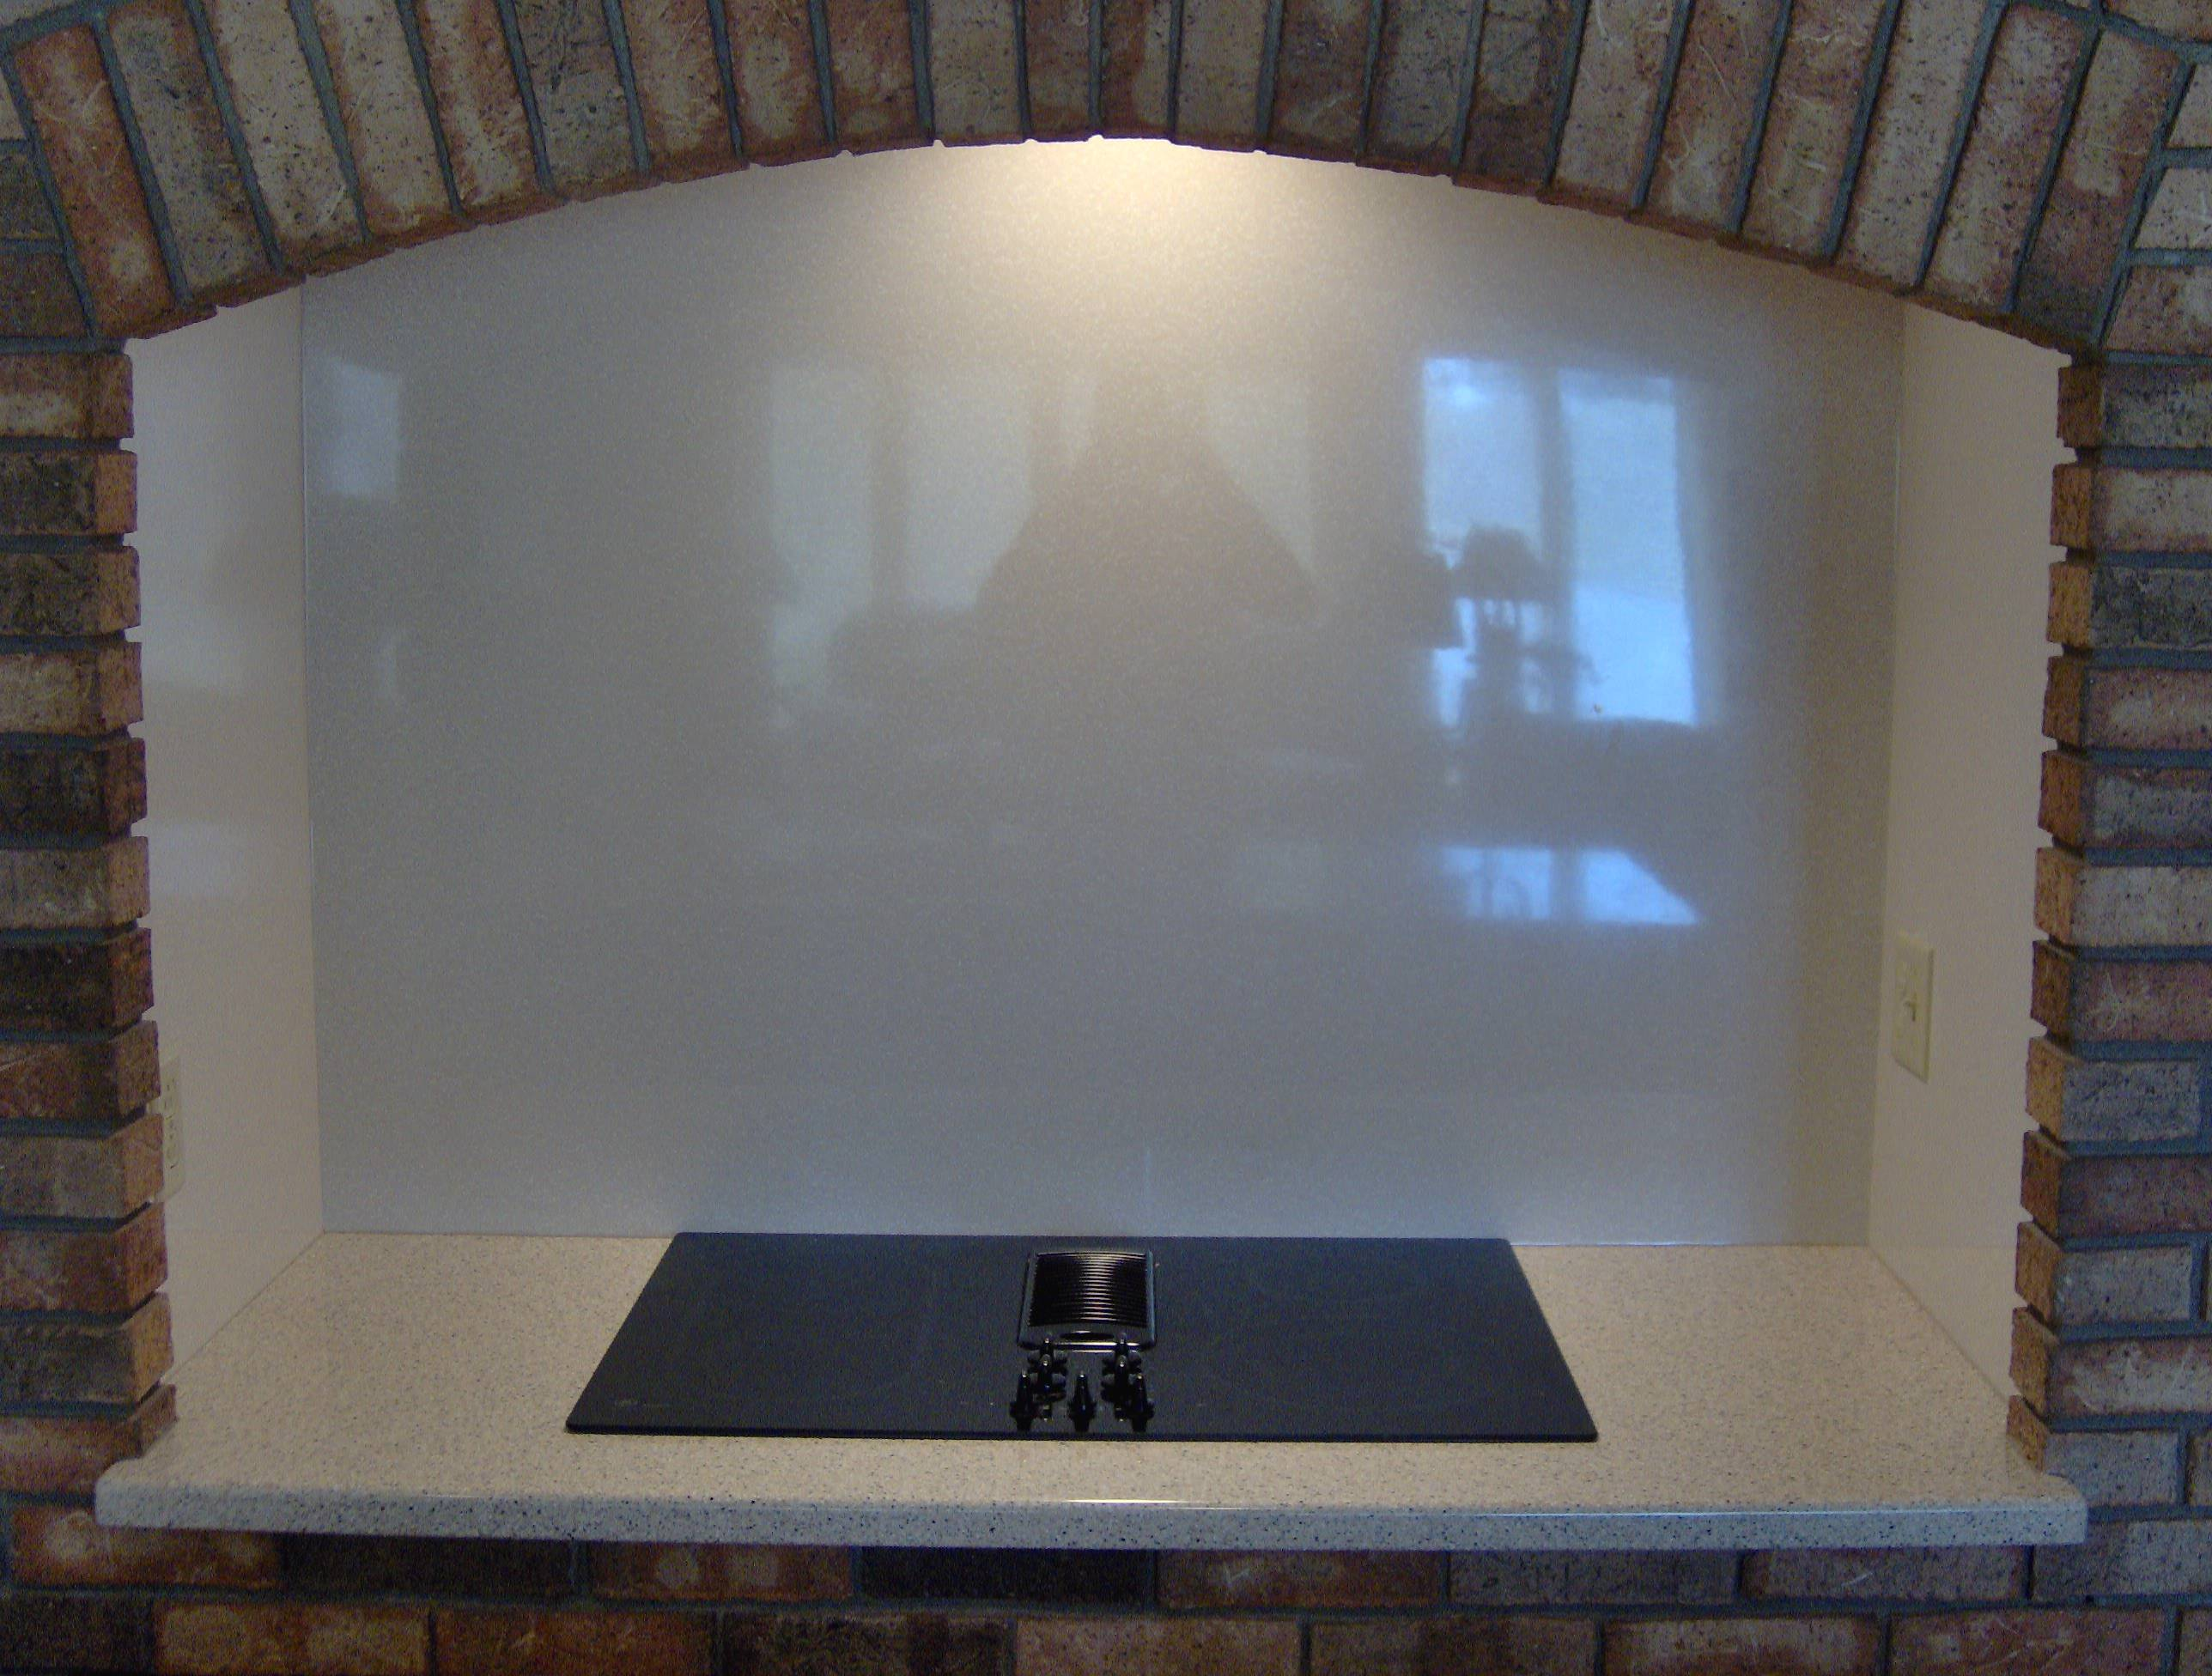 Solid Surface Surround with Stove